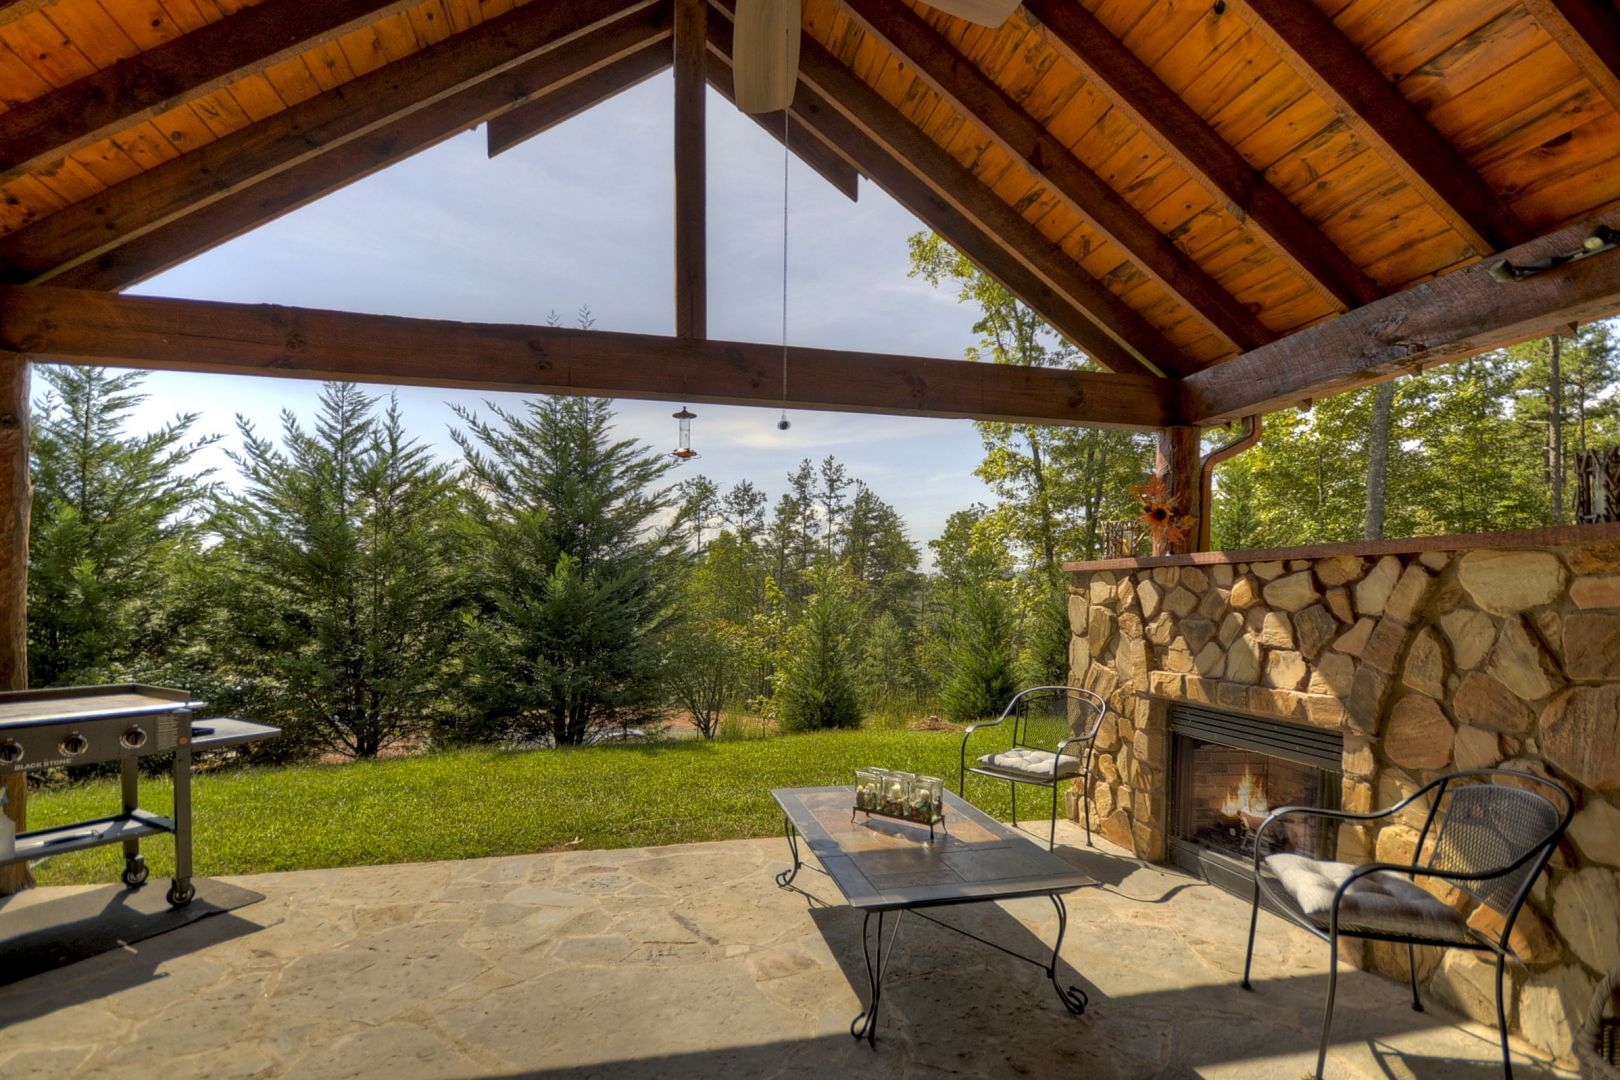 Fox Run Lodge Rental Cabin | Cuddle Up Cabin Rentals on Blue Fox Outdoor Living id=98312